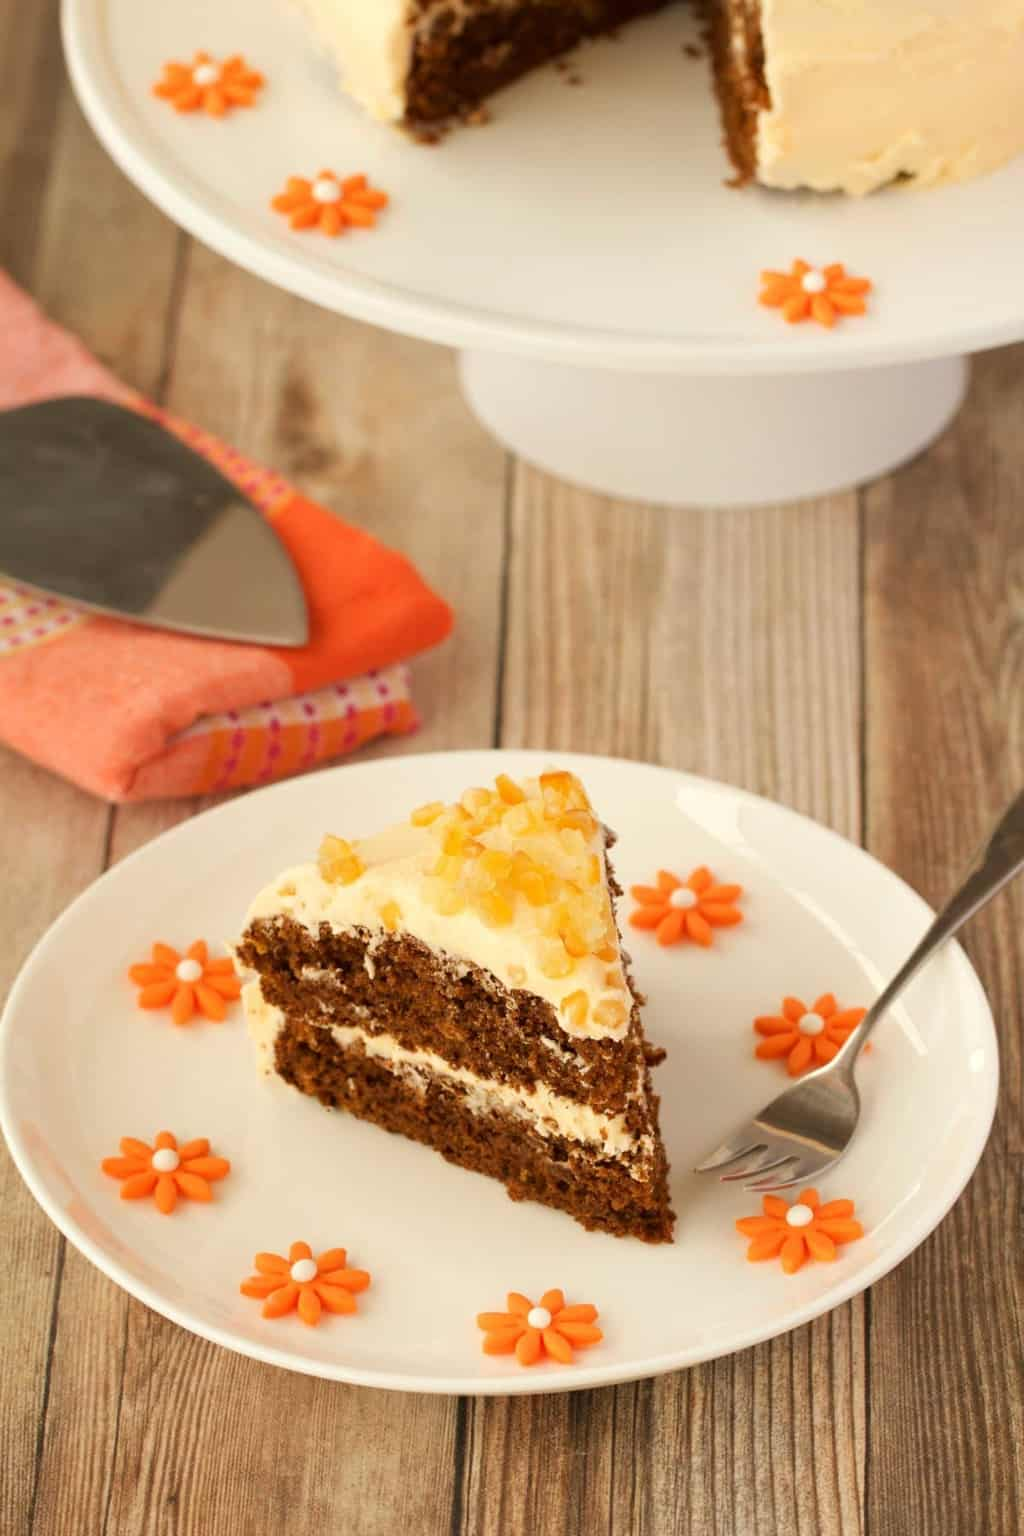 Perfectly flavored gingerbread cake with orange frosting. This gorgeous vegan cake is rich, moist and packed with gingerbread flavor! #vegan #lovingitvegan #gingerbread #vegancake #dessert #dairyfree